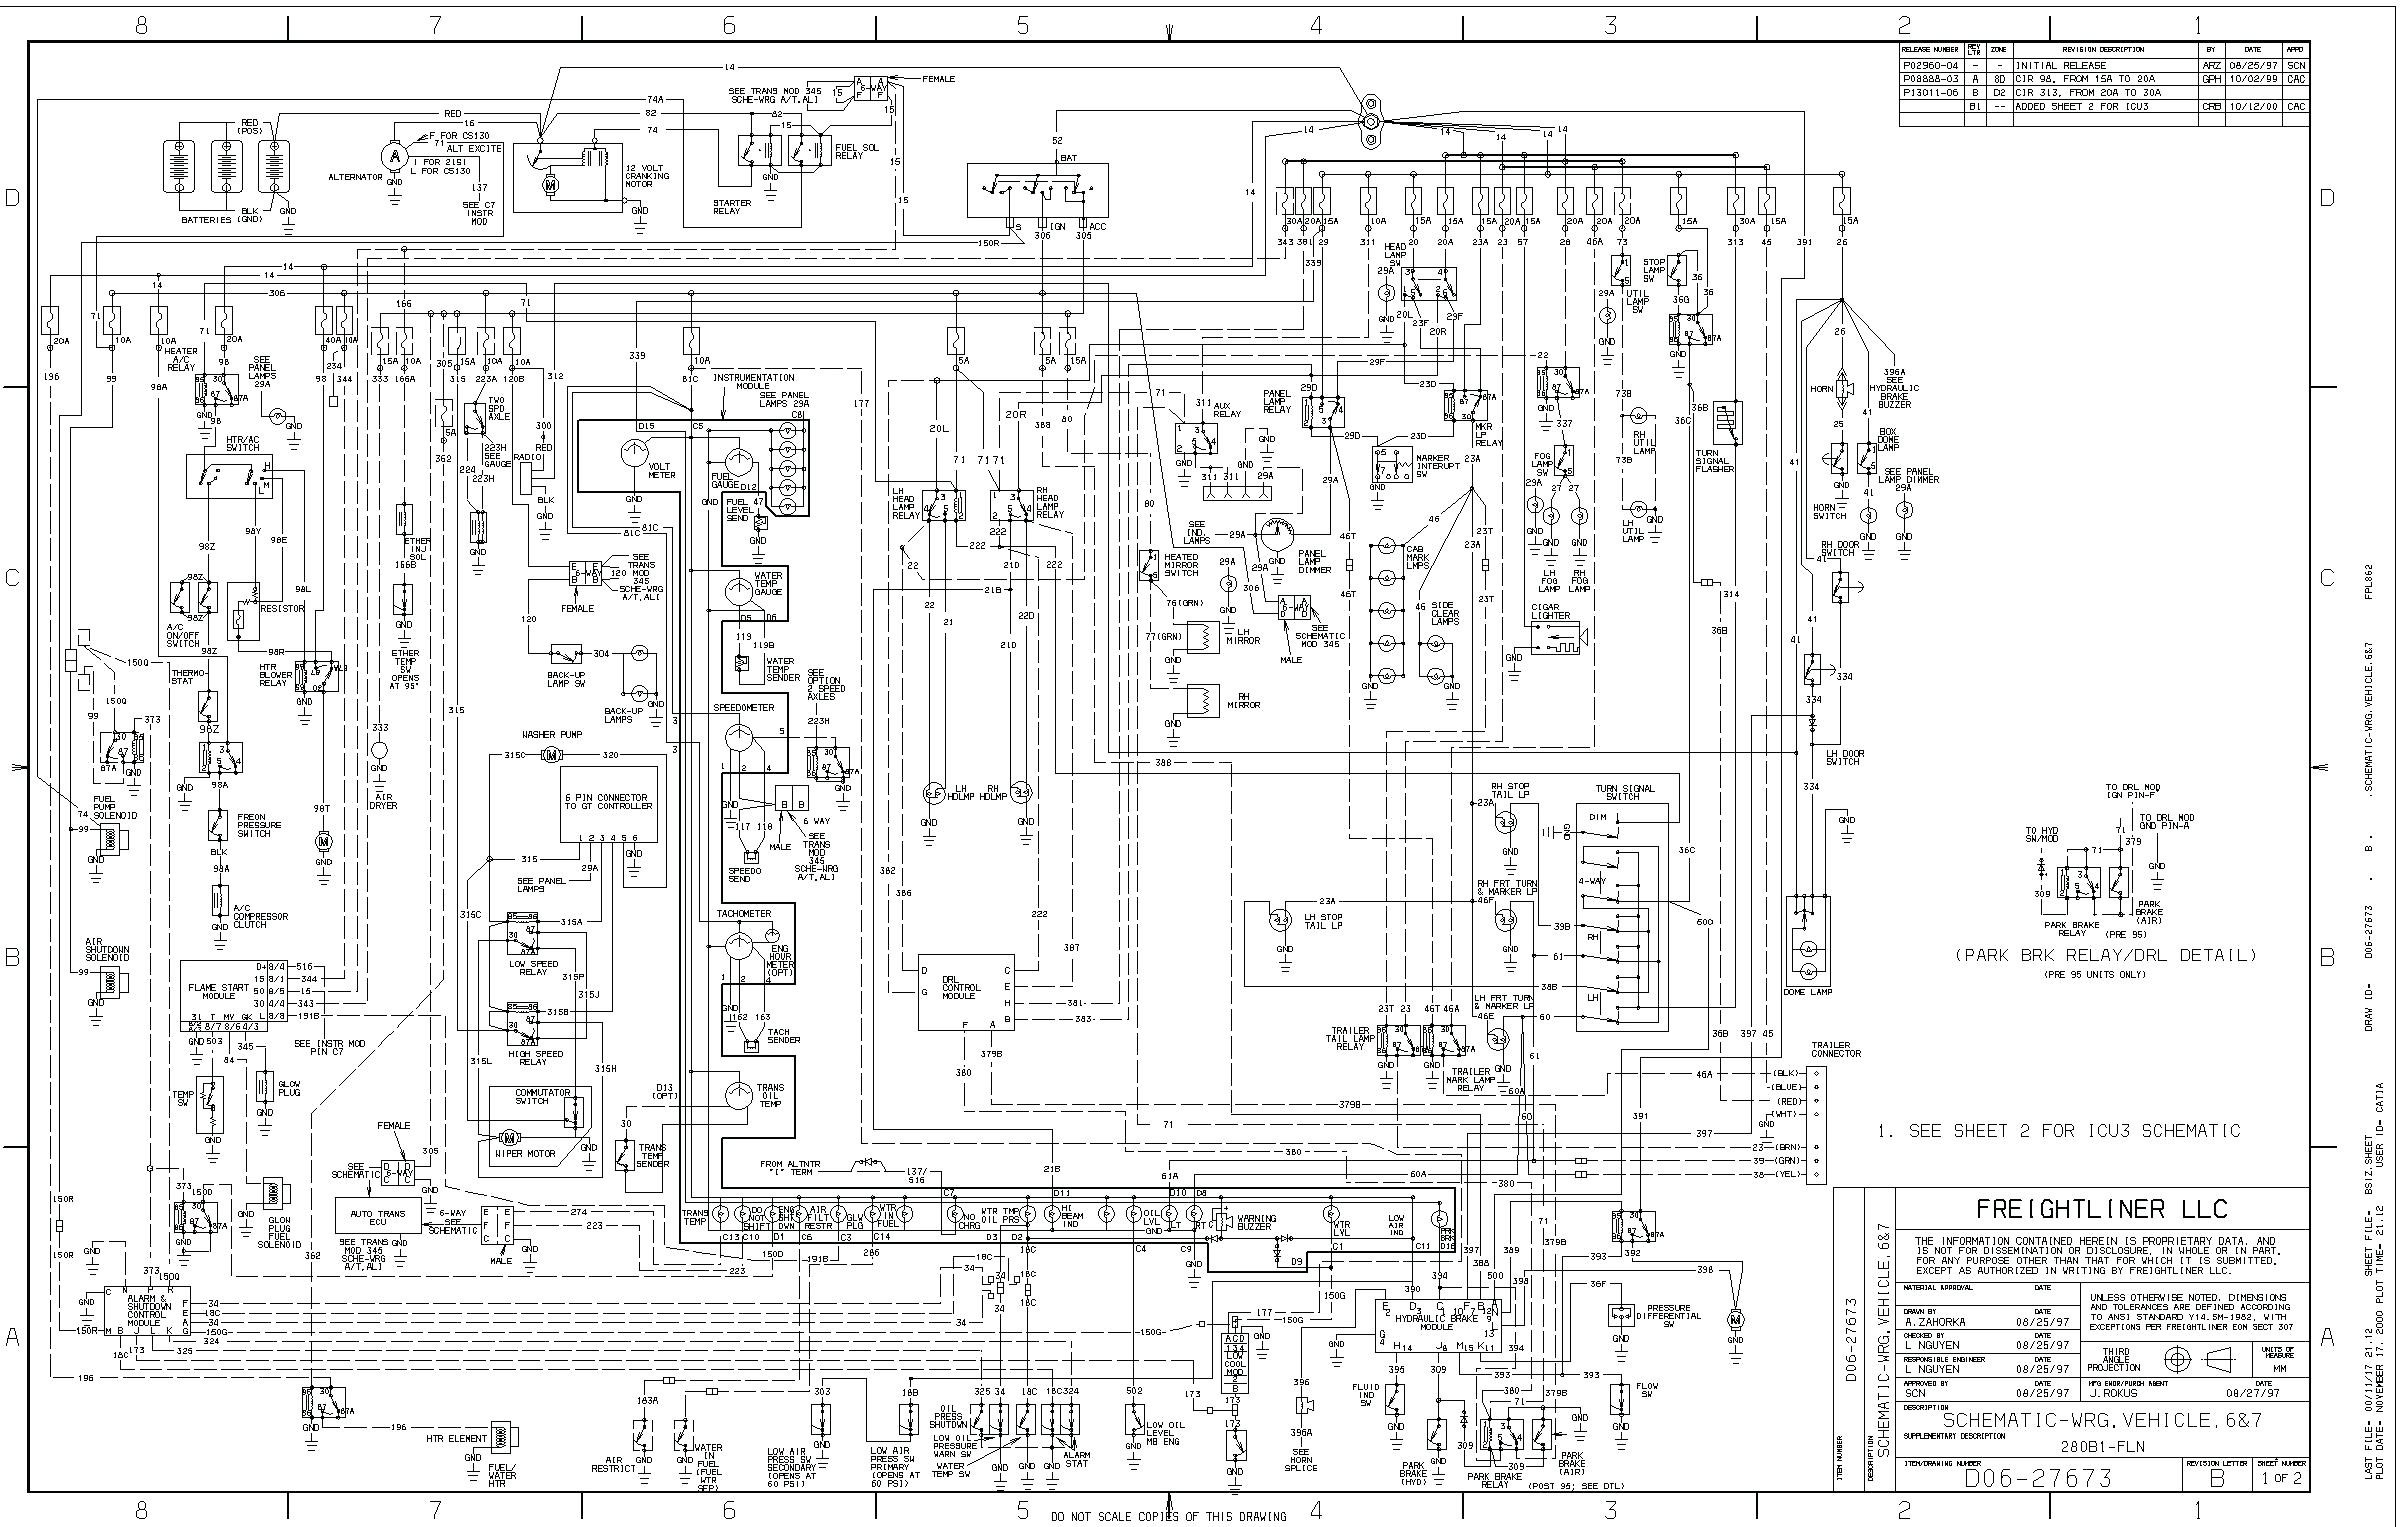 Wiring Diagram Toyota Ipsum And Schematics For 2000 Camry Engine Get Free Image About Rh Dronomap Co 2002